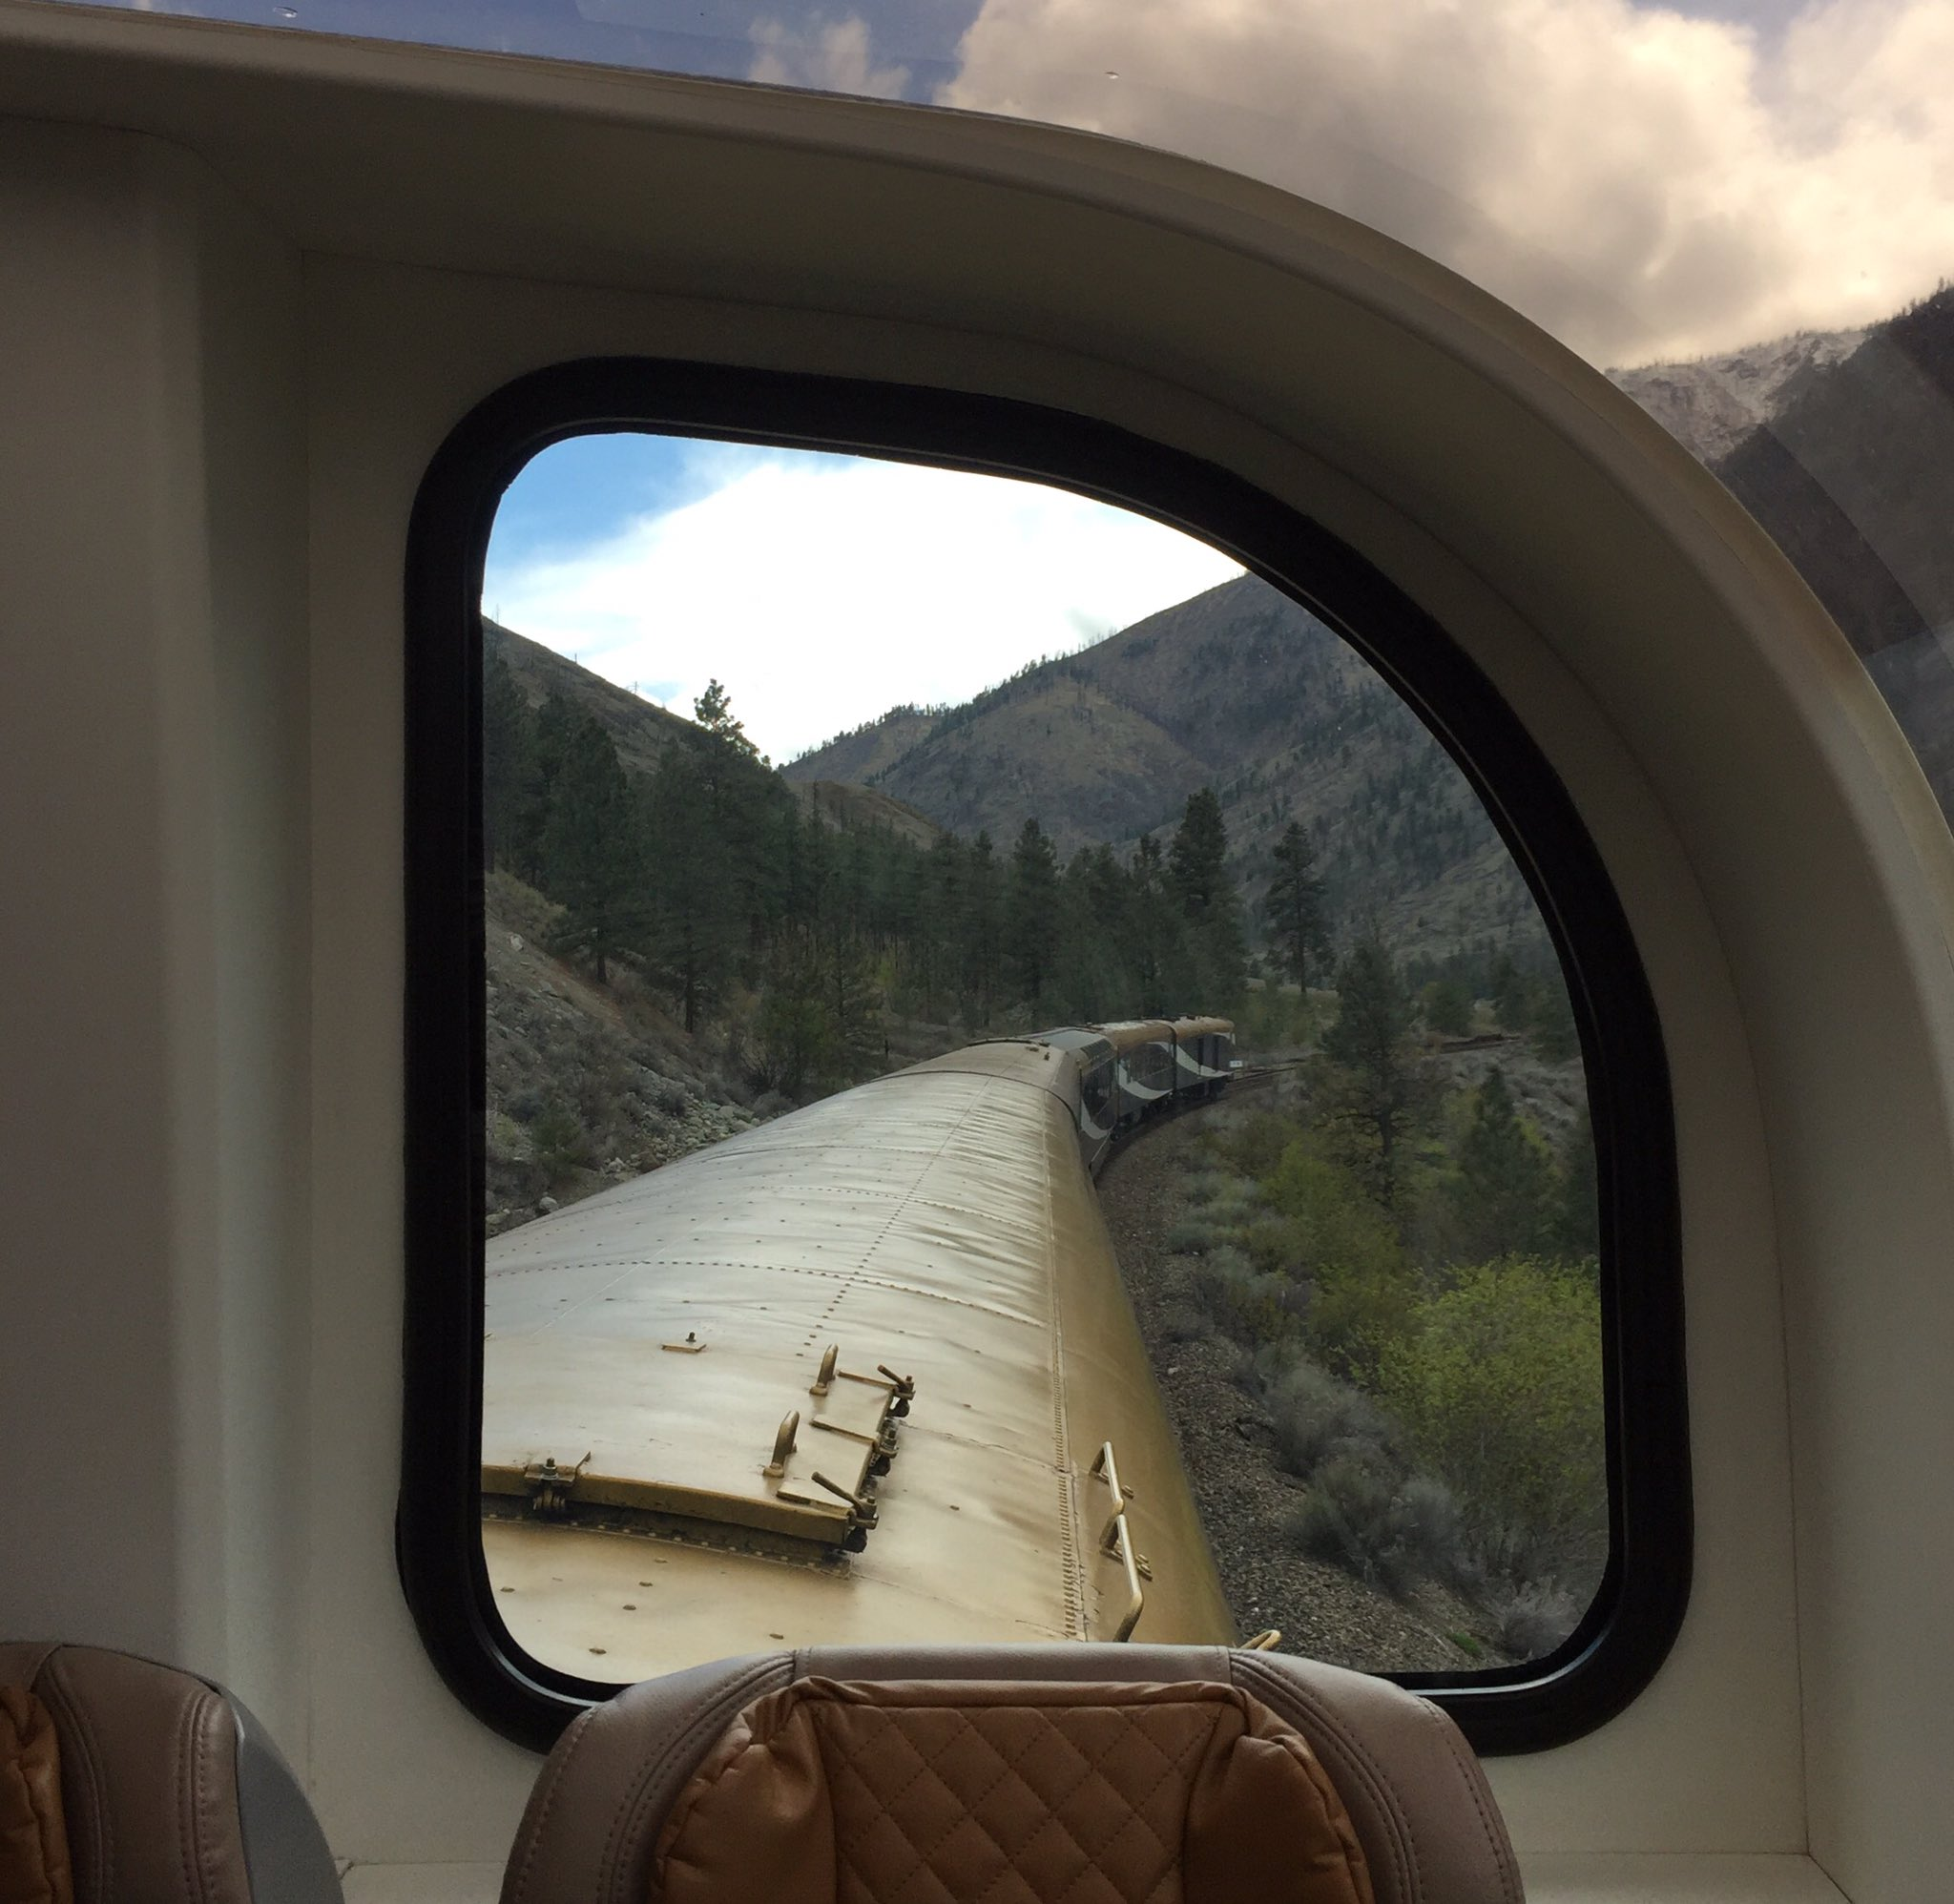 Enjoying my ride on #RockyMountaineer #travel  Have you been? Love💙 the view!! https://t.co/e9PwWJraZz